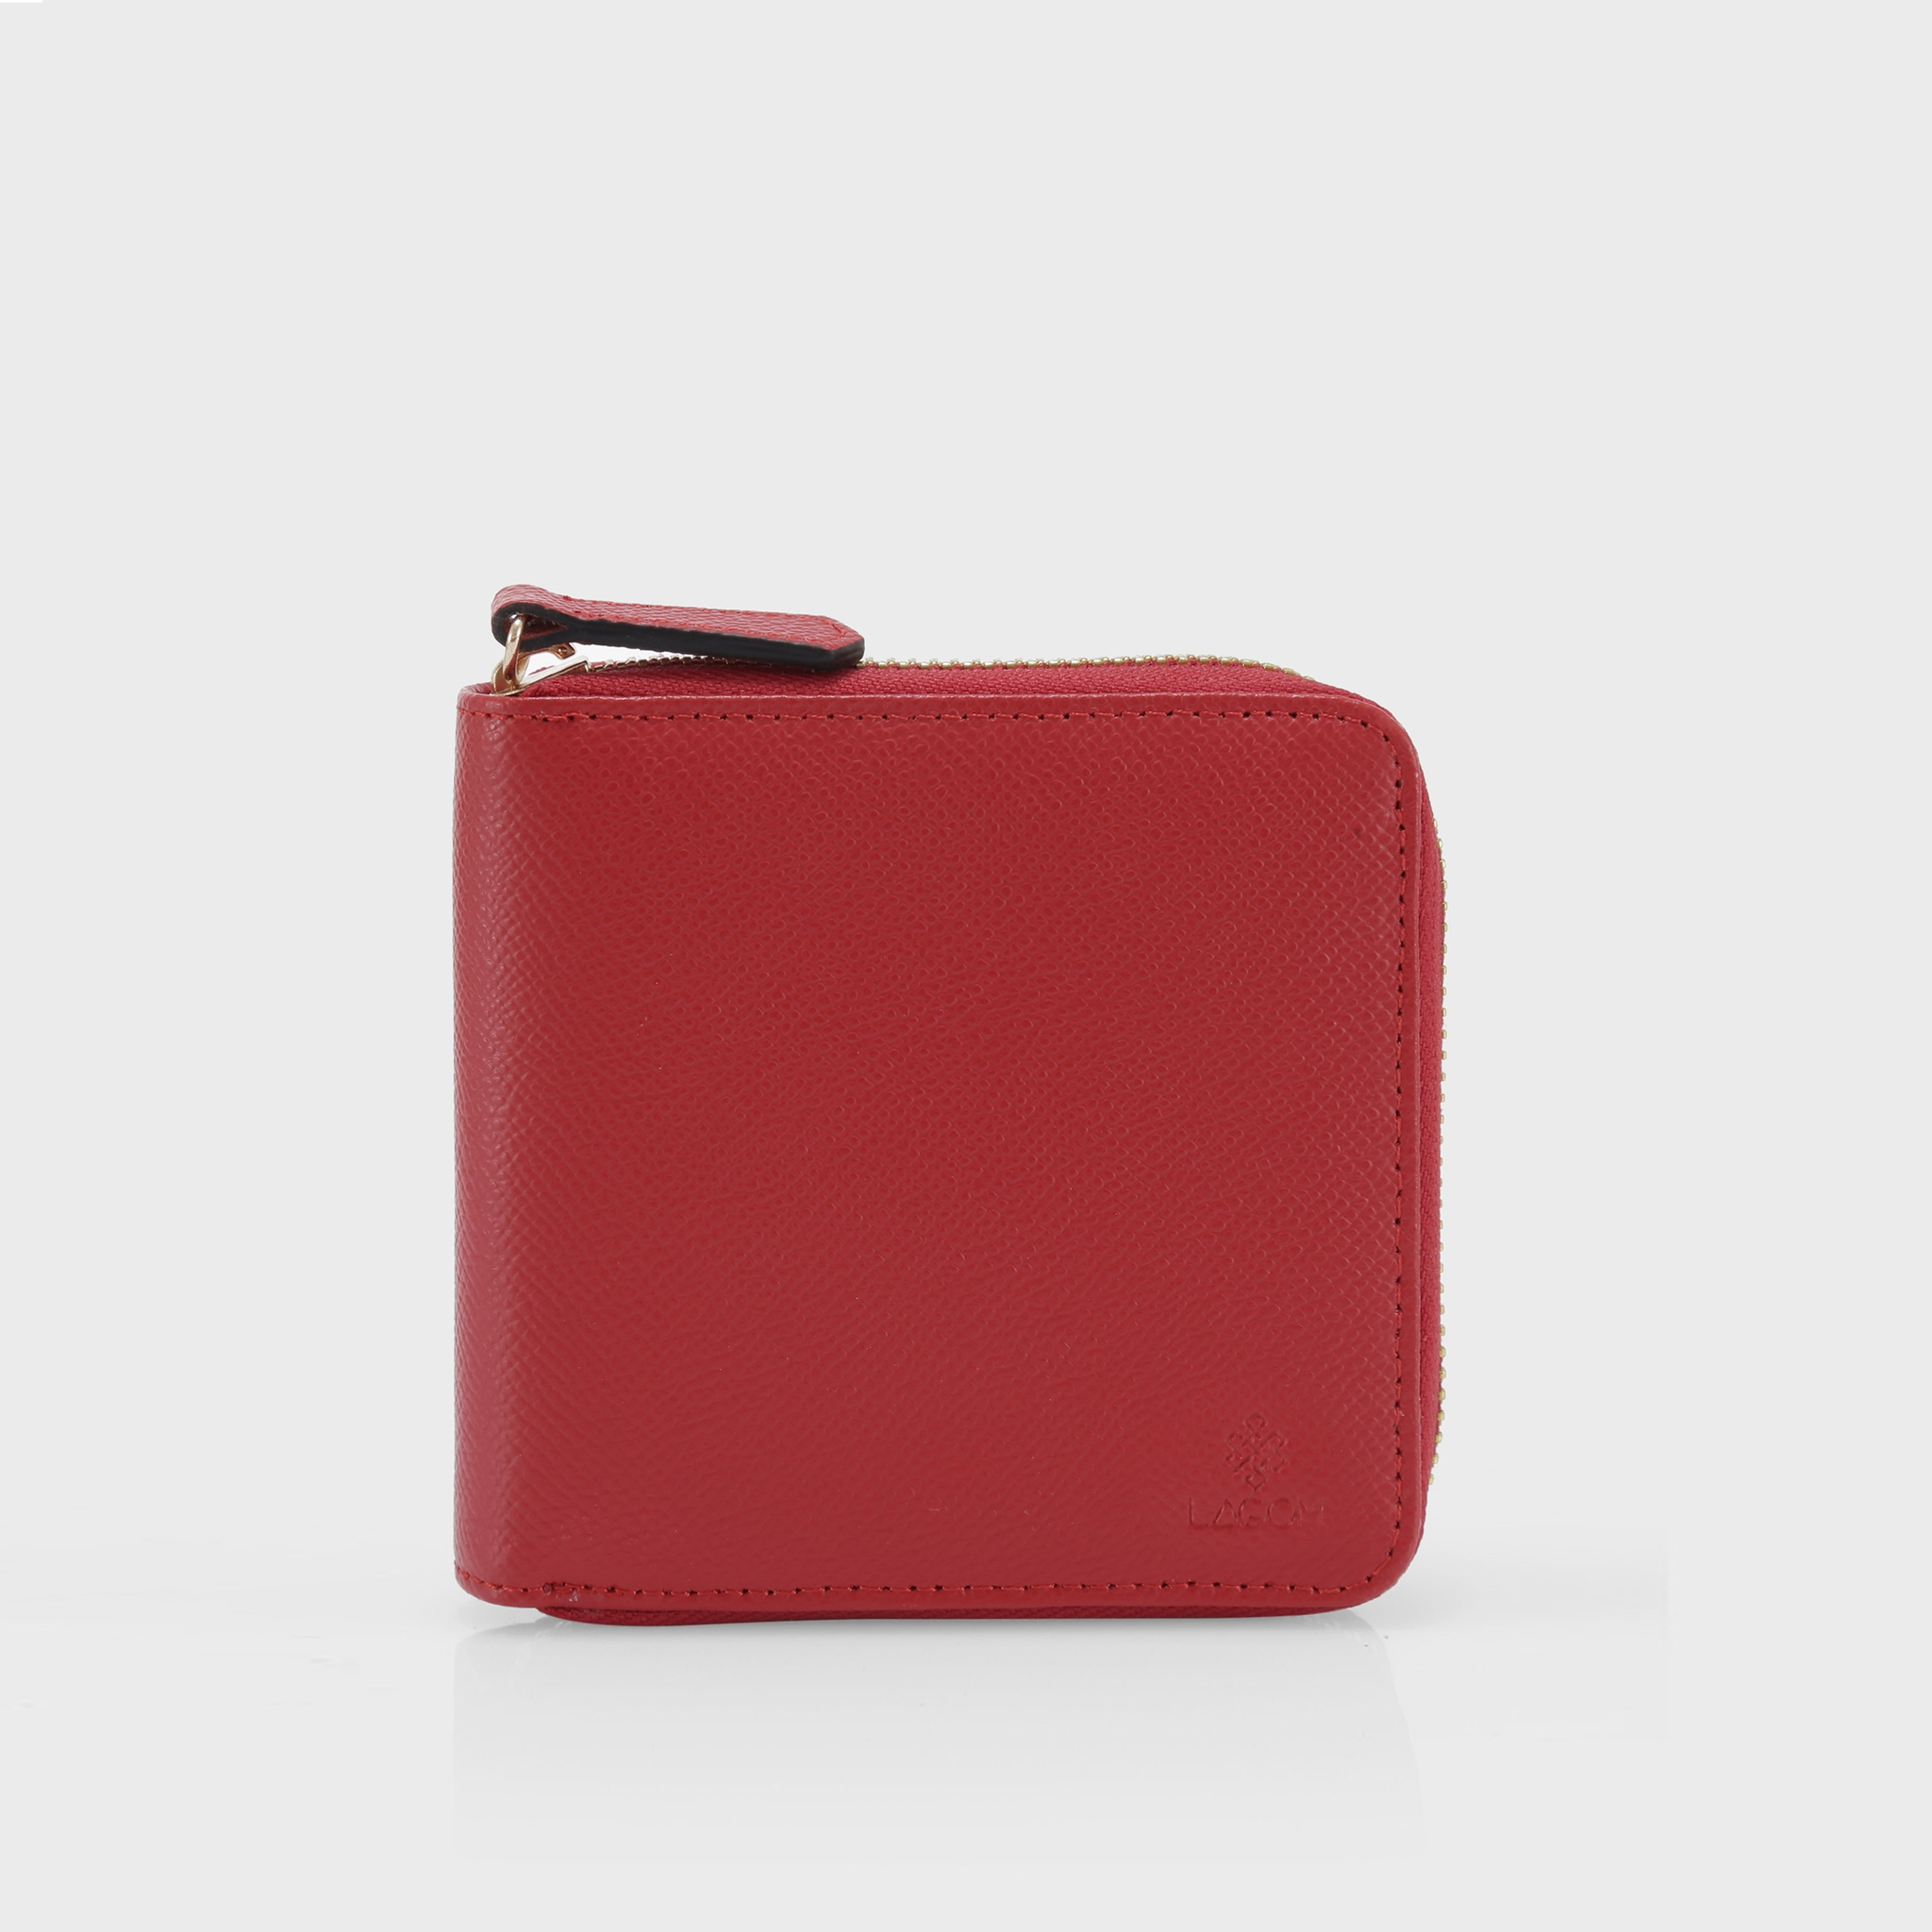 LAGOM ZIPPY SQUARE WALLET